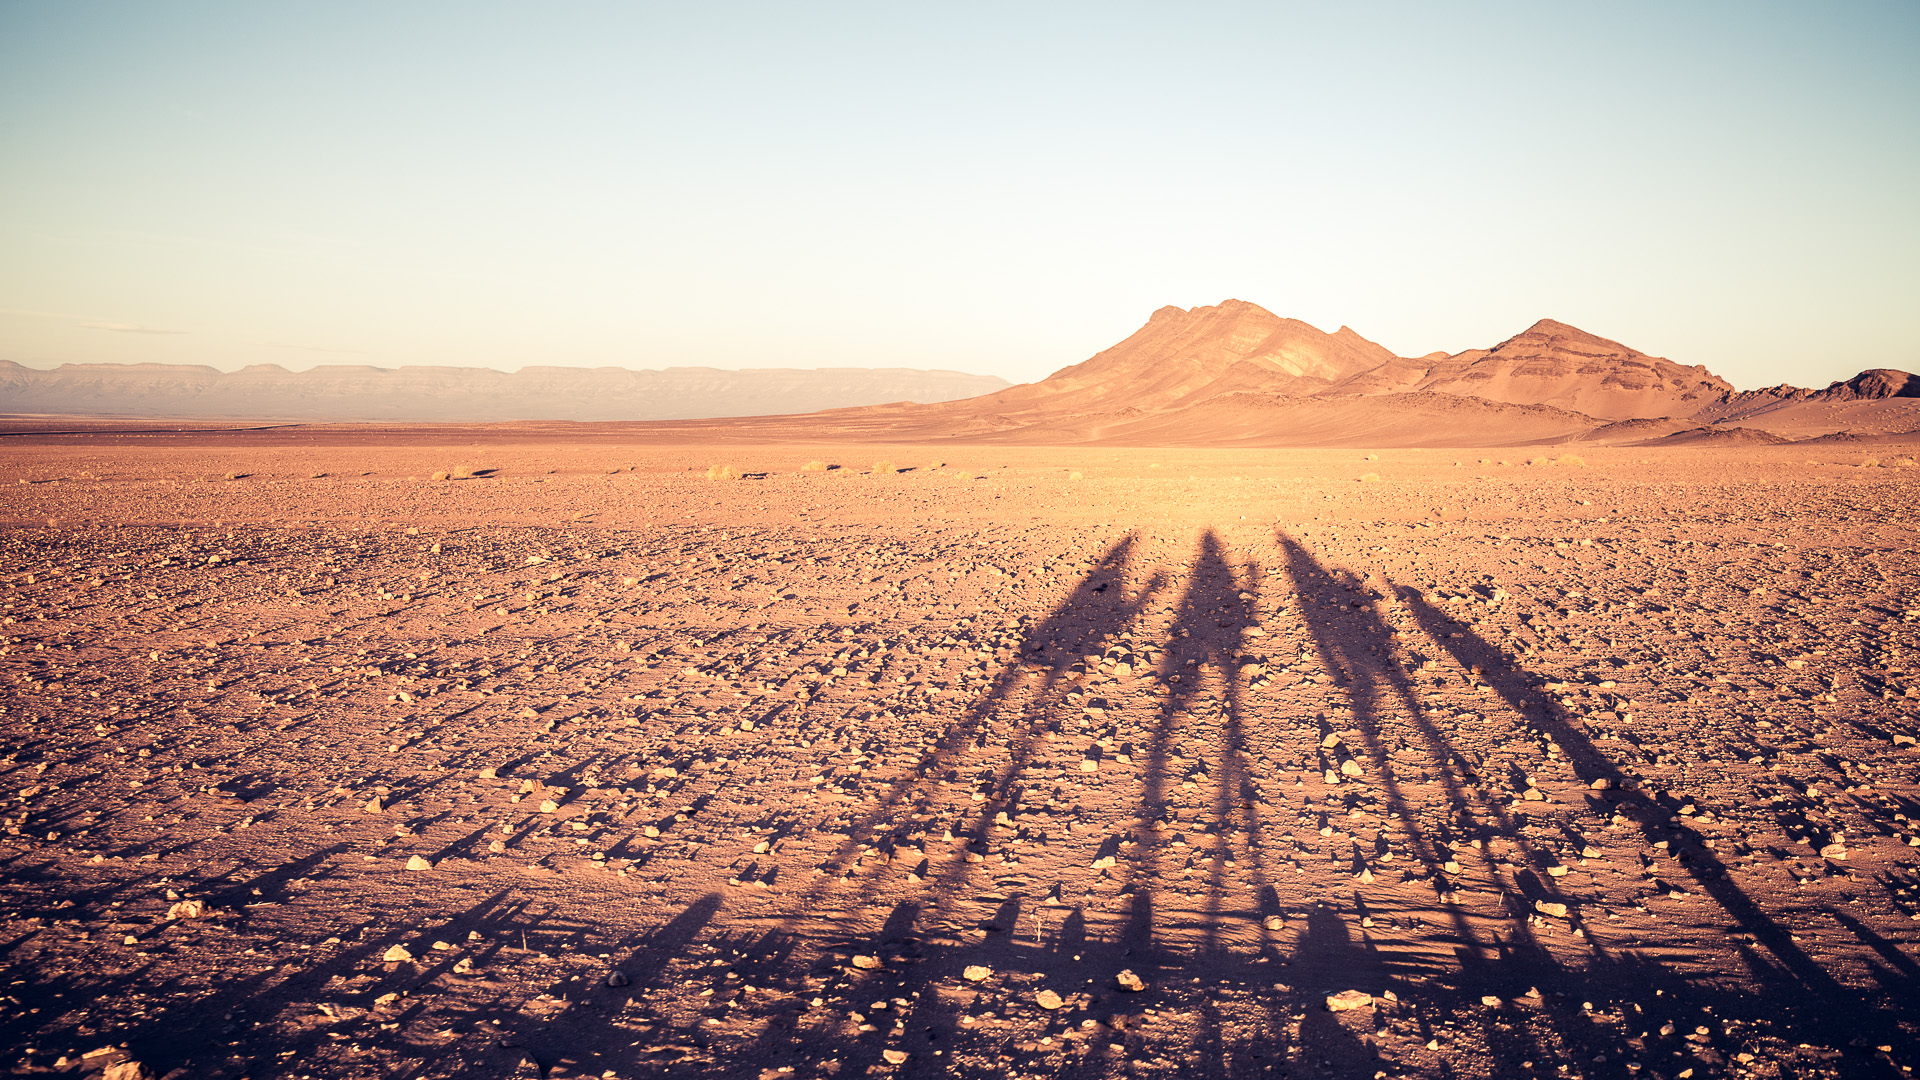 Desert sunset with shadows cast by the camels in morocco